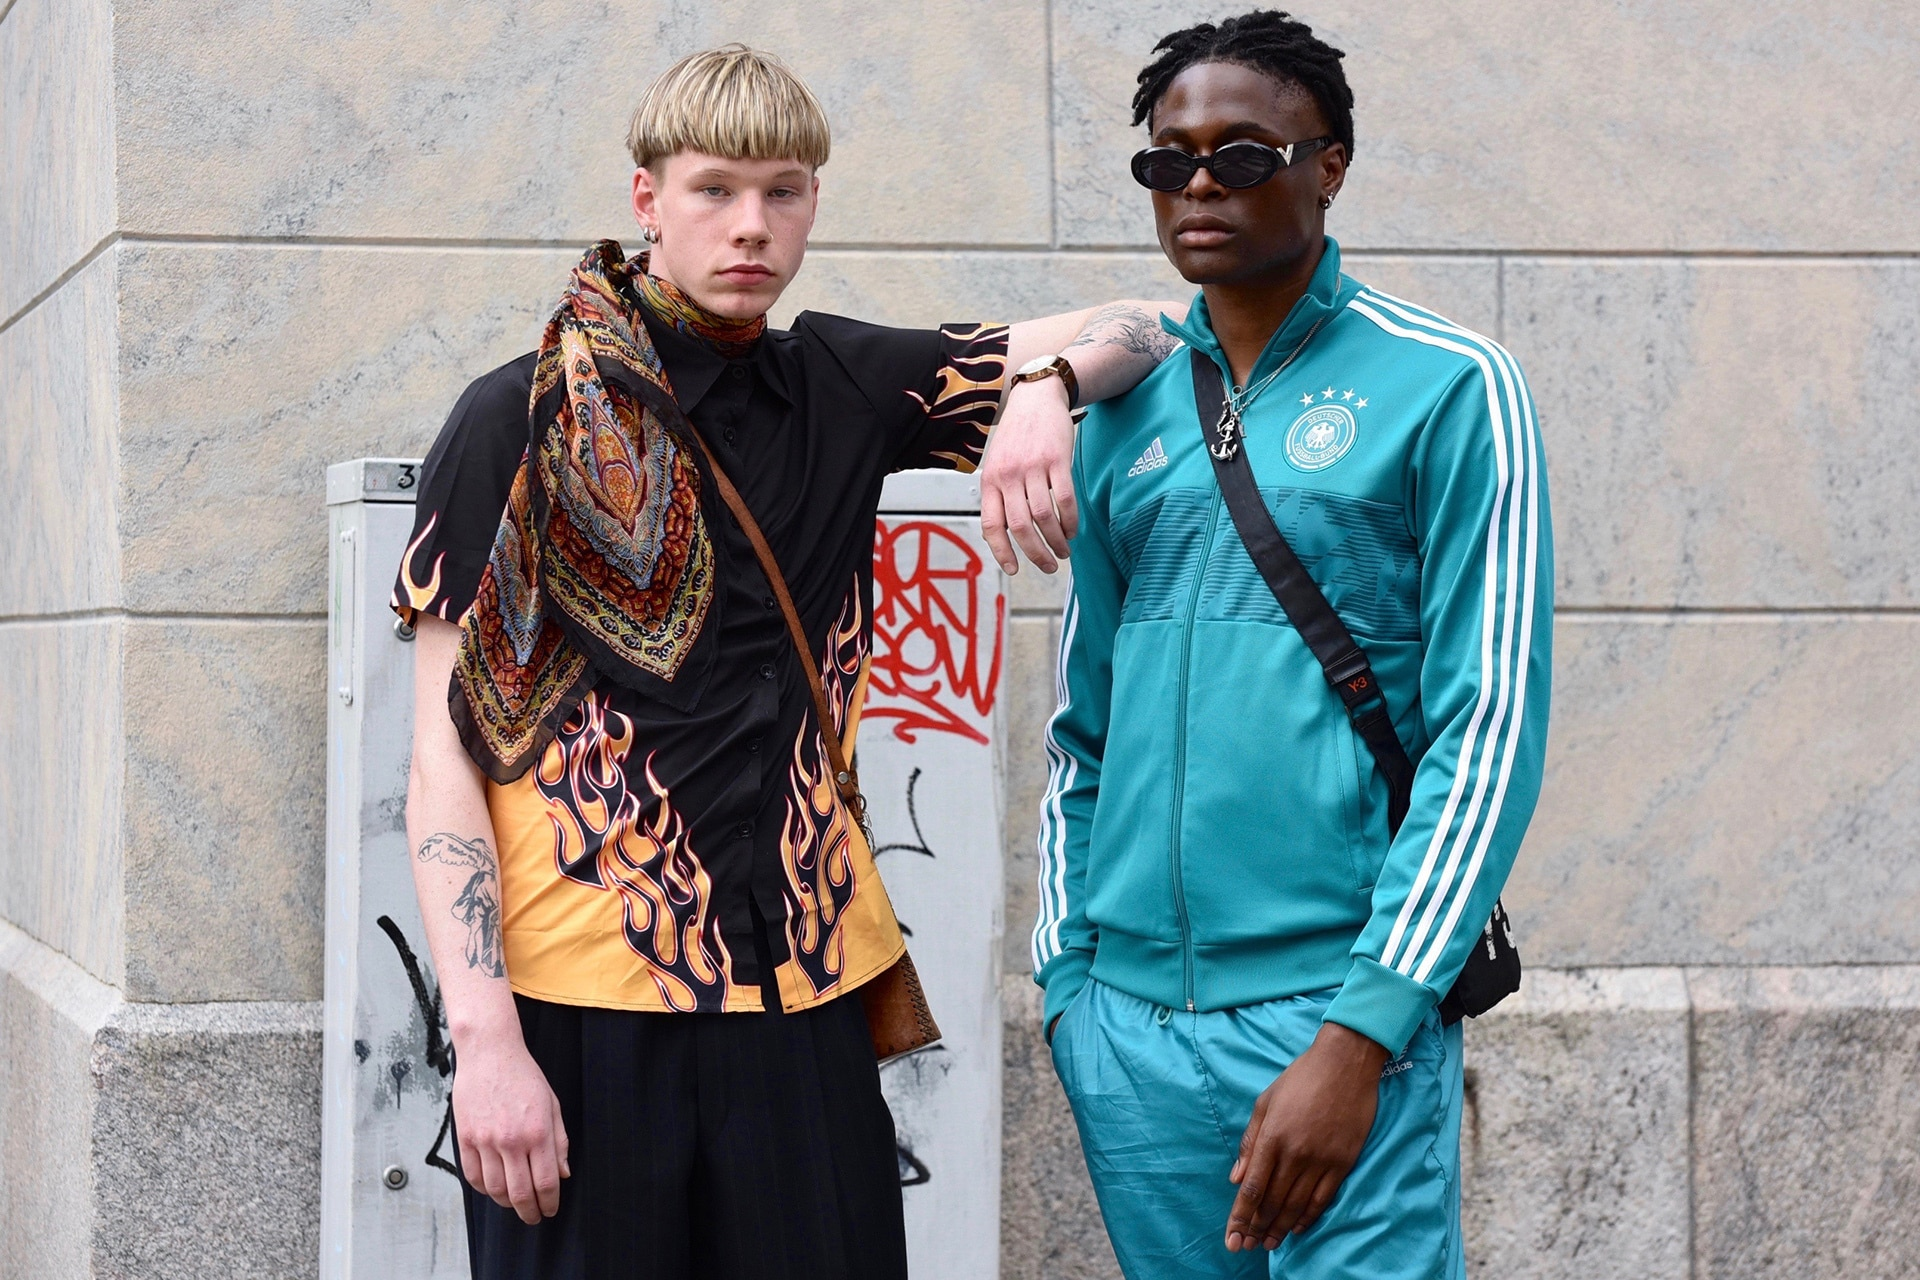 The Best Men's Street Style On Show At Helsinki Fashion Week Spring 2020